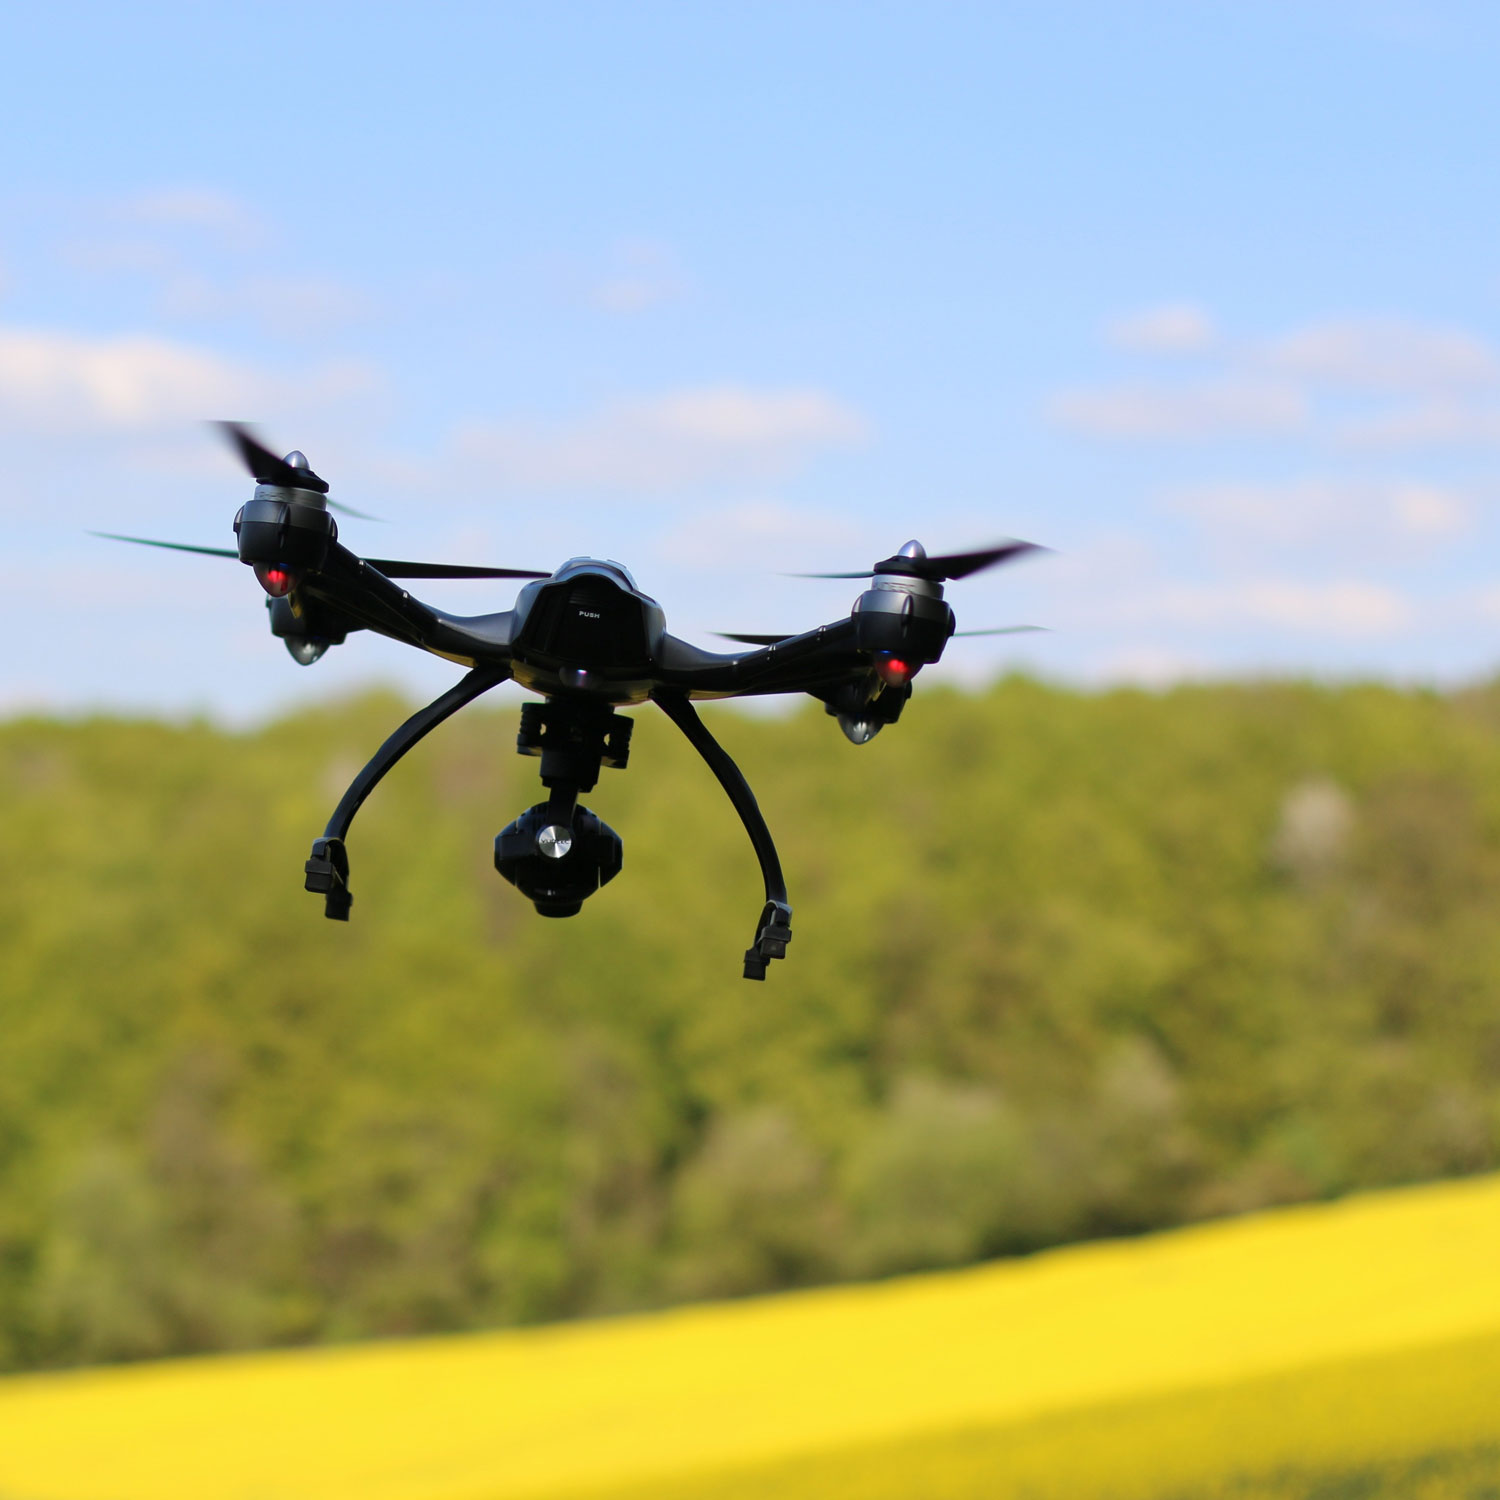 Drone Debrief: Data-based Decision Making